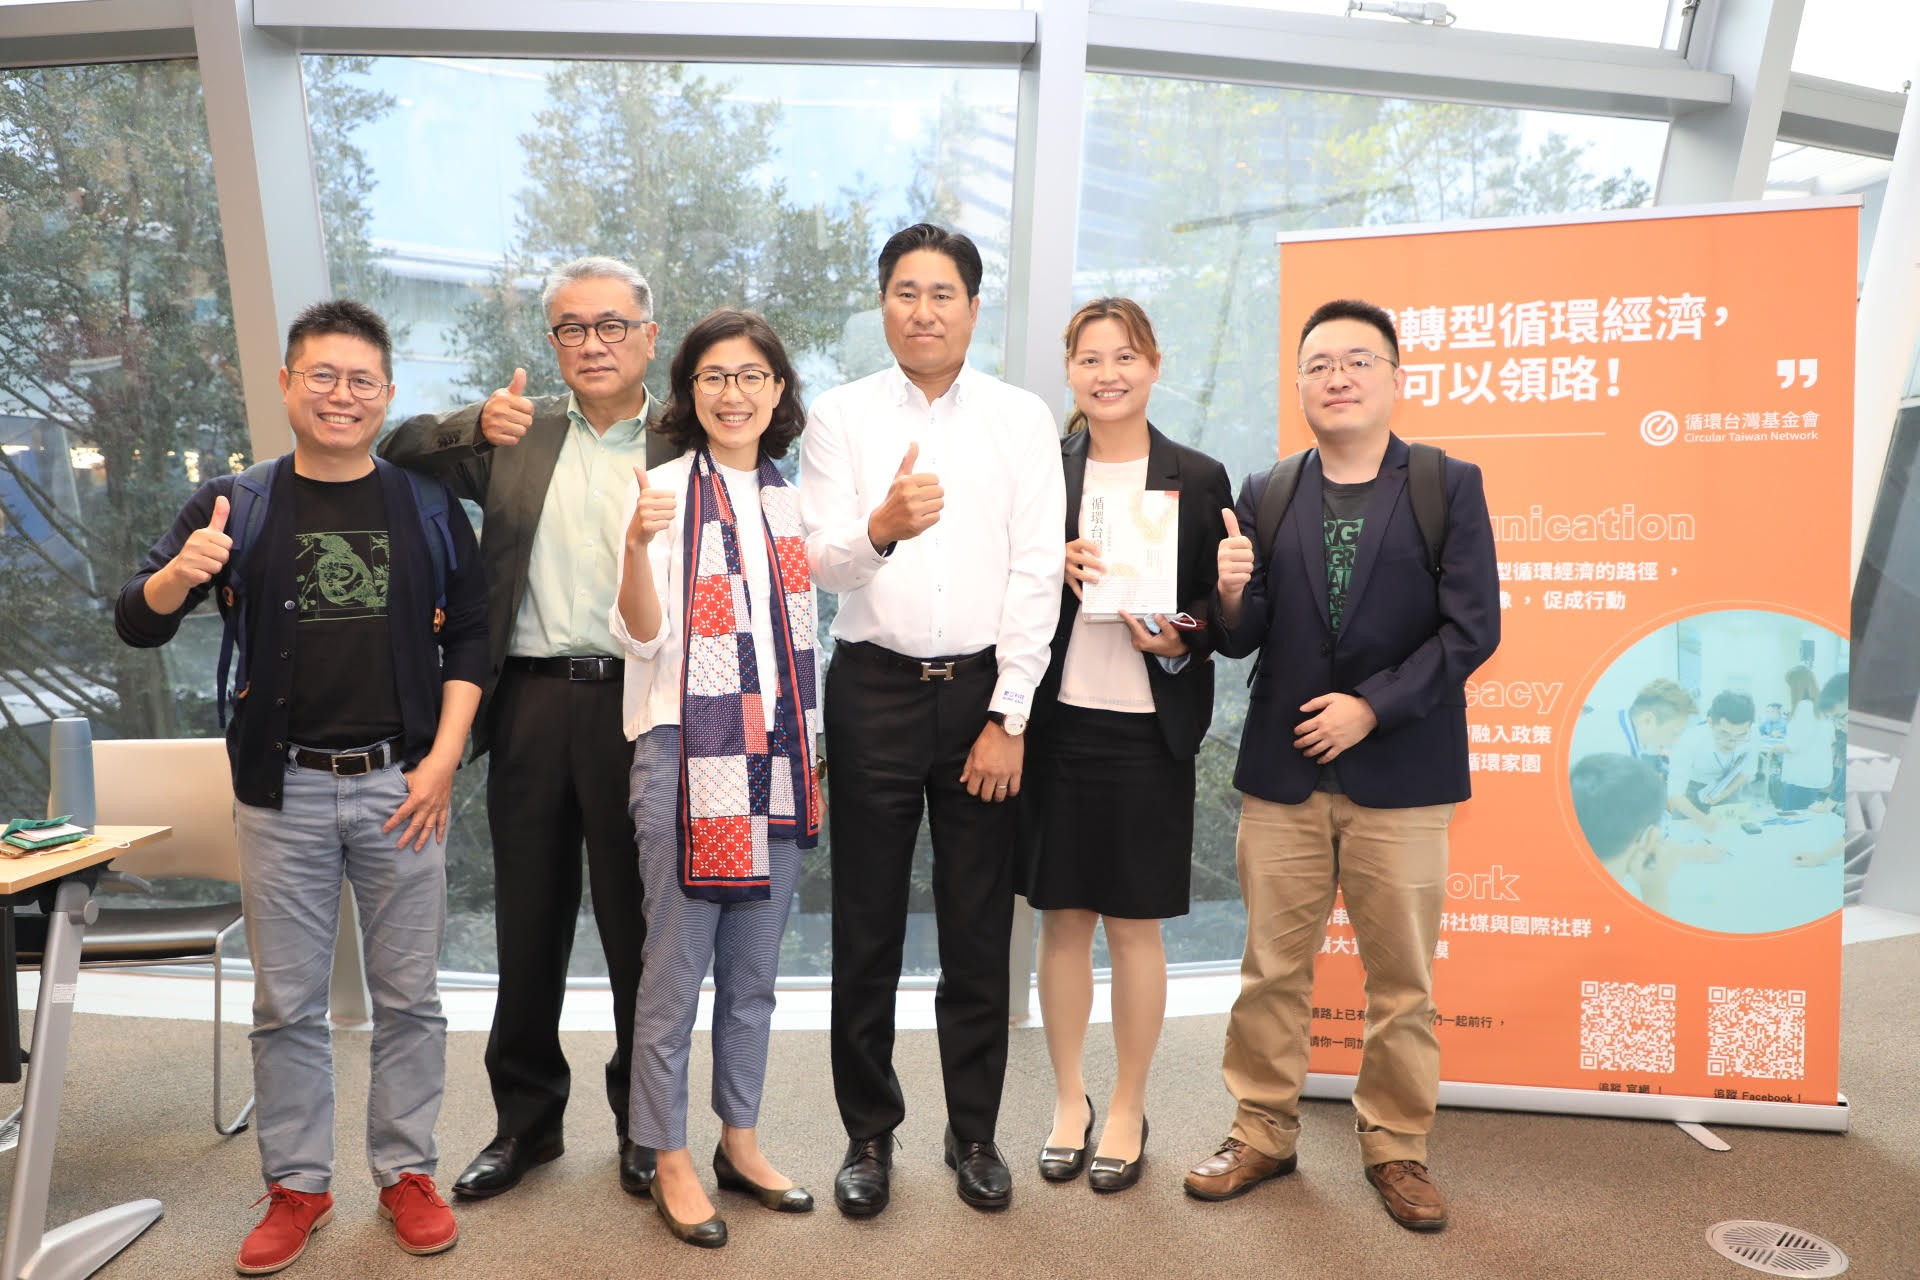 """2021/3/27 Chairman Yamin Hsieh as panelist of """"Circular Taiwan"""" book launch party in Kaohsiung"""